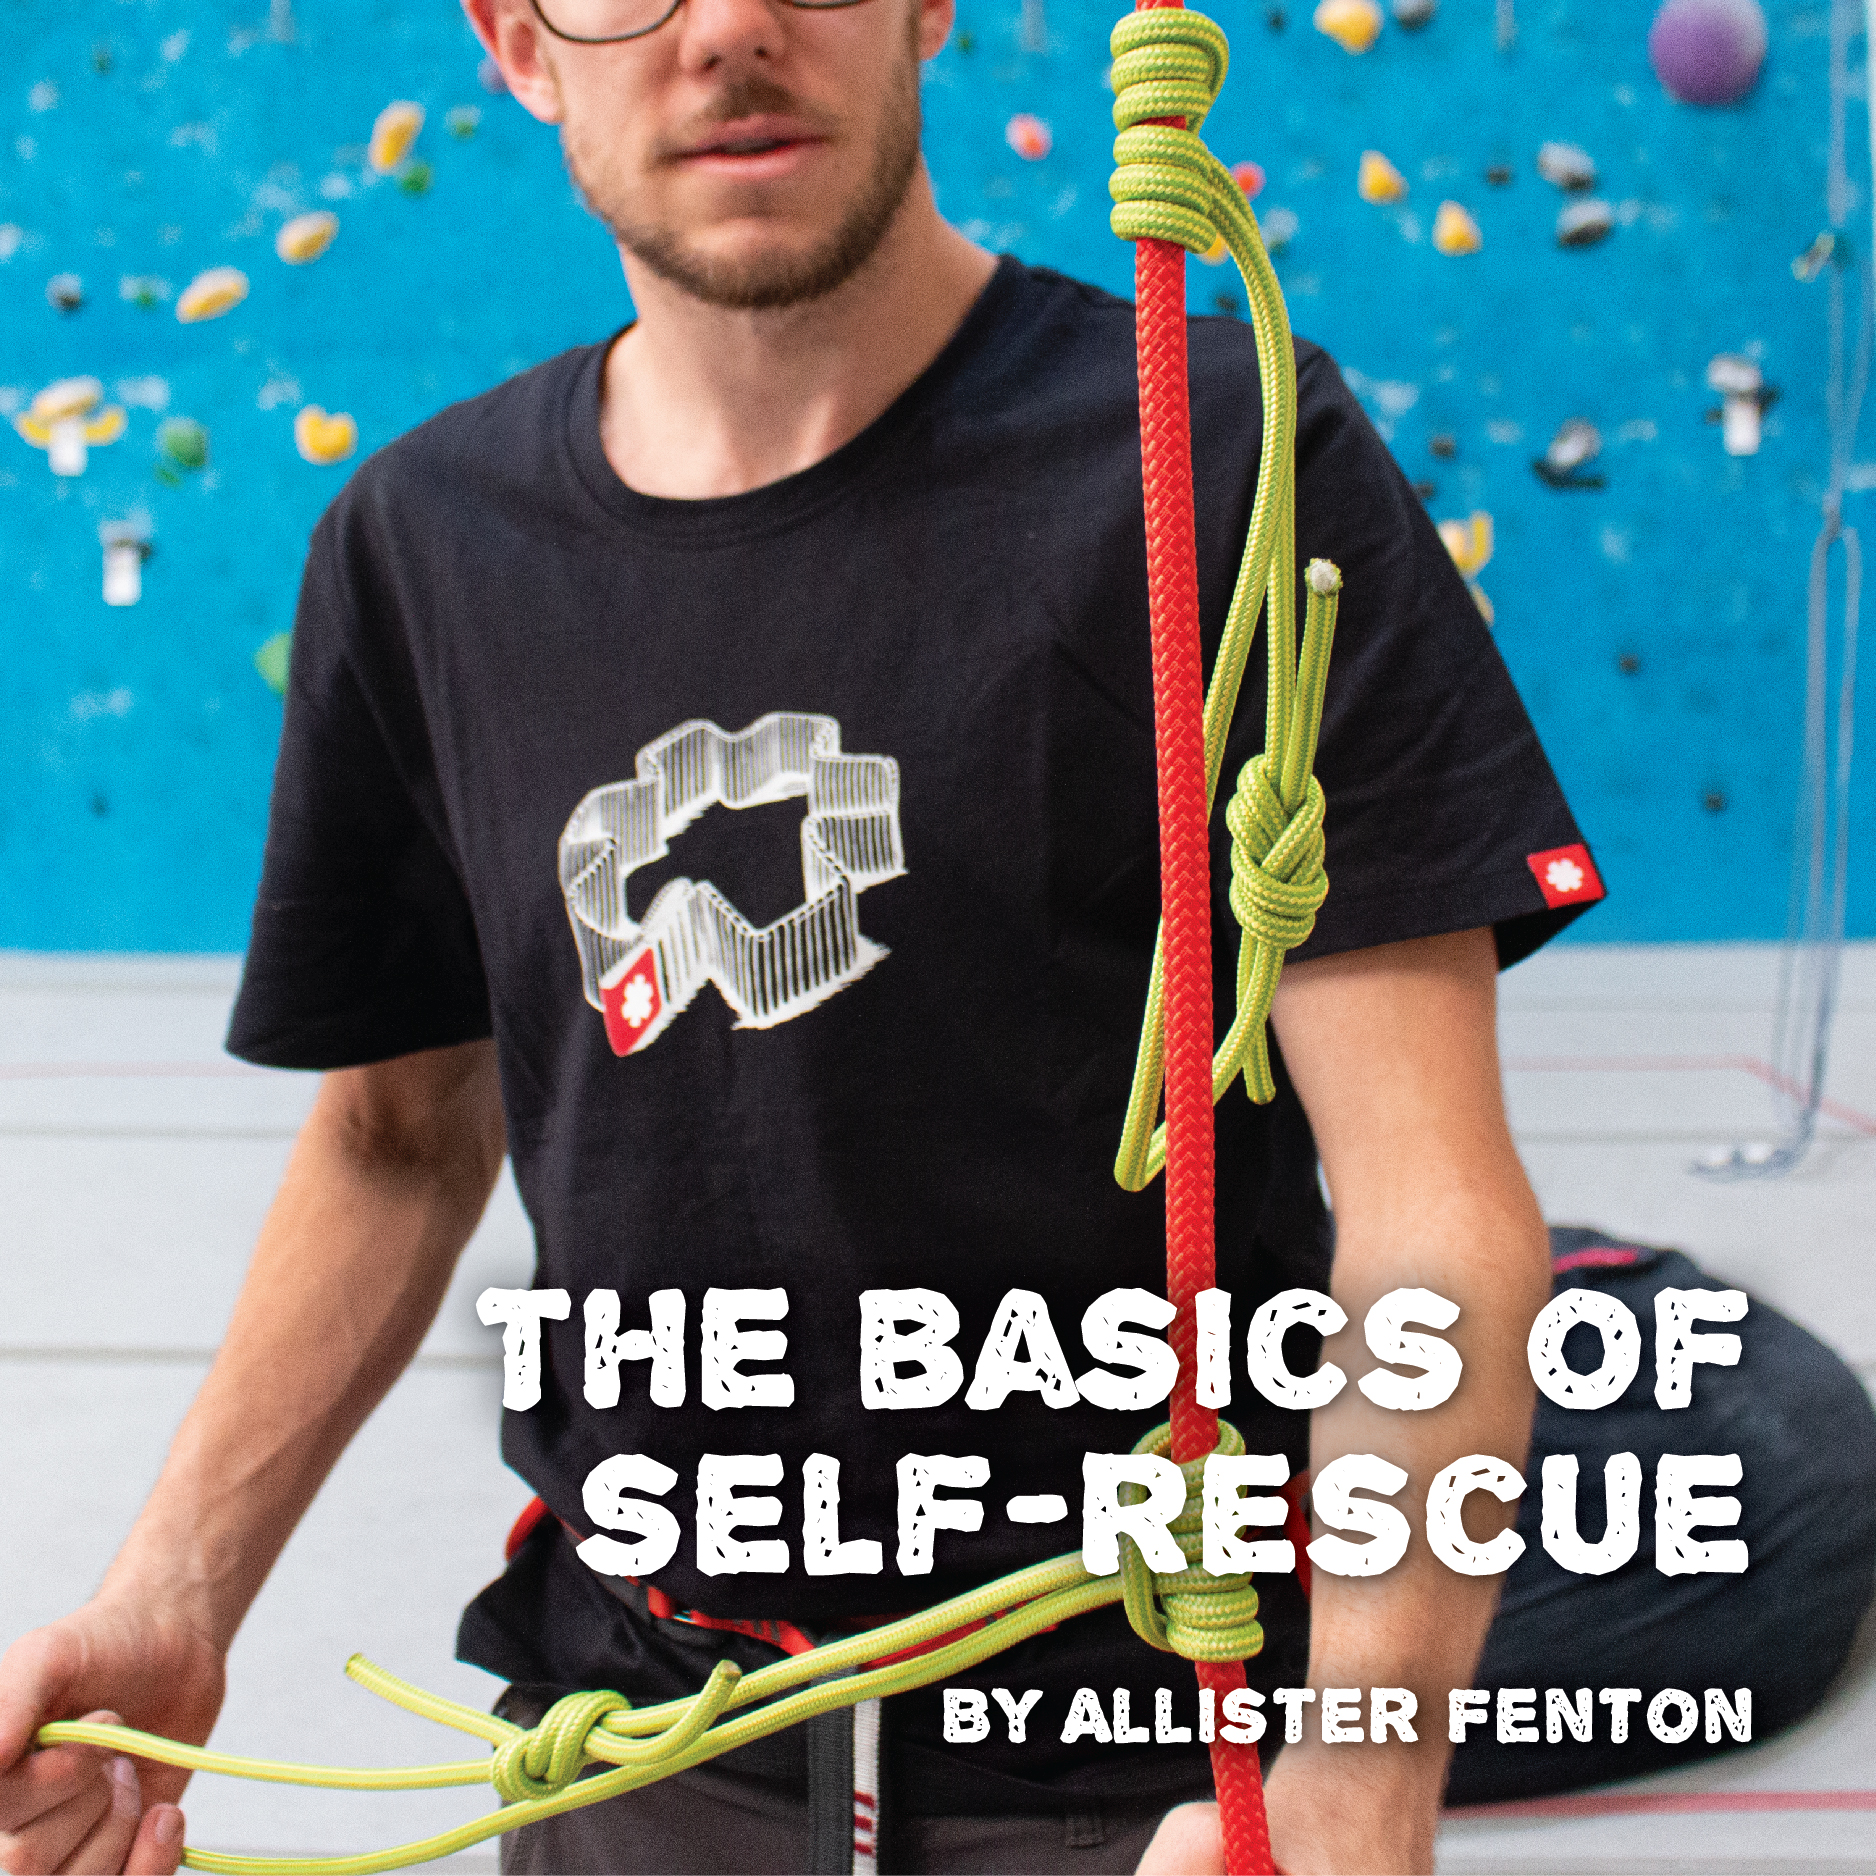 The basics of self-rescue